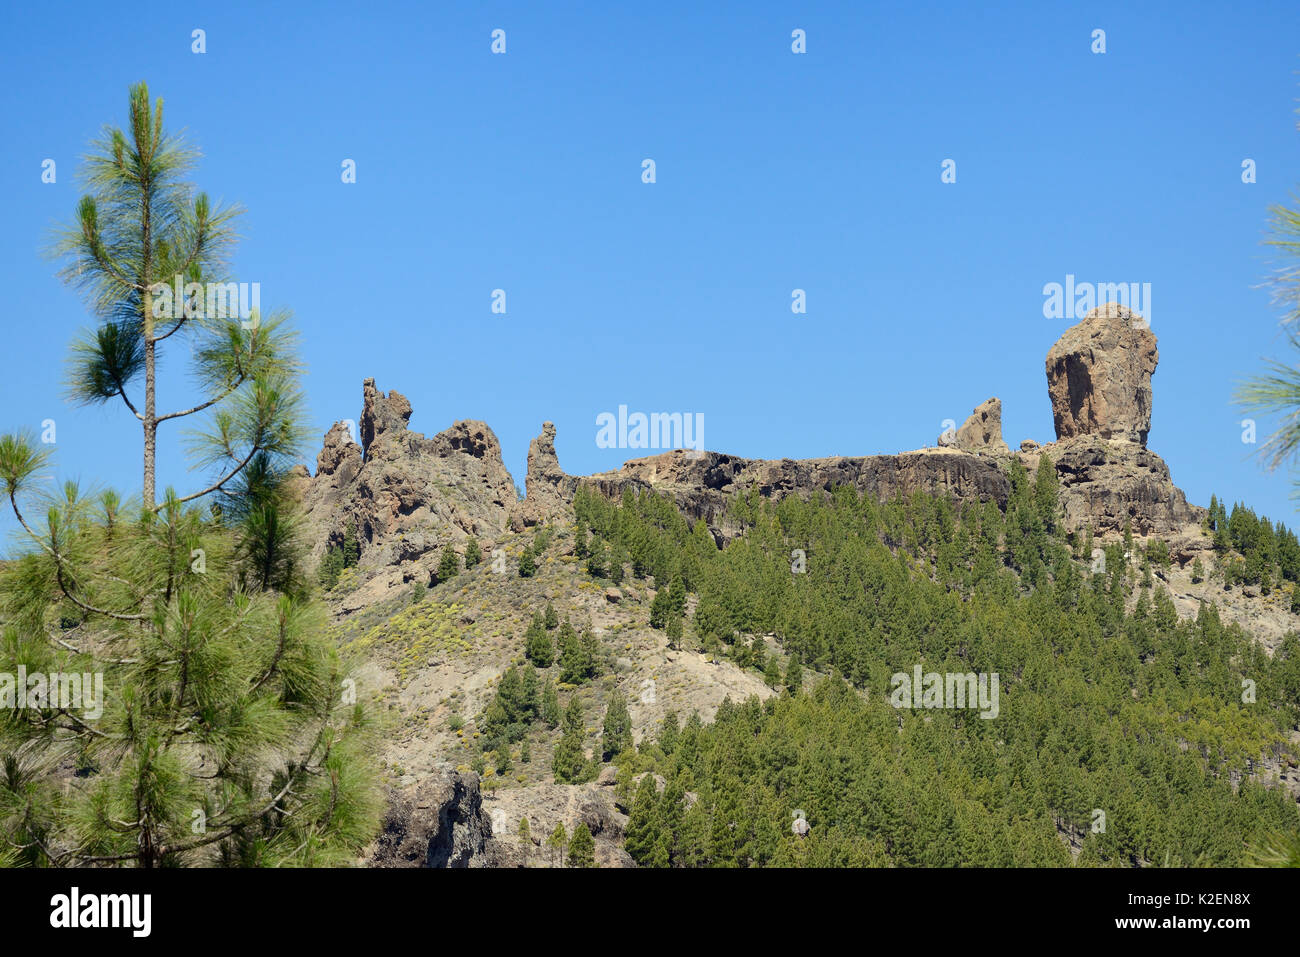 Roque Nublo and other volcanic basaltic monoliths on the Tablon Nublo plateau, within a UNESCO Biosphere Reserve, Gran Canaria, flanked by Canary Island pines (Pinus canariensis), near Tejeda, May 2016. - Stock Image